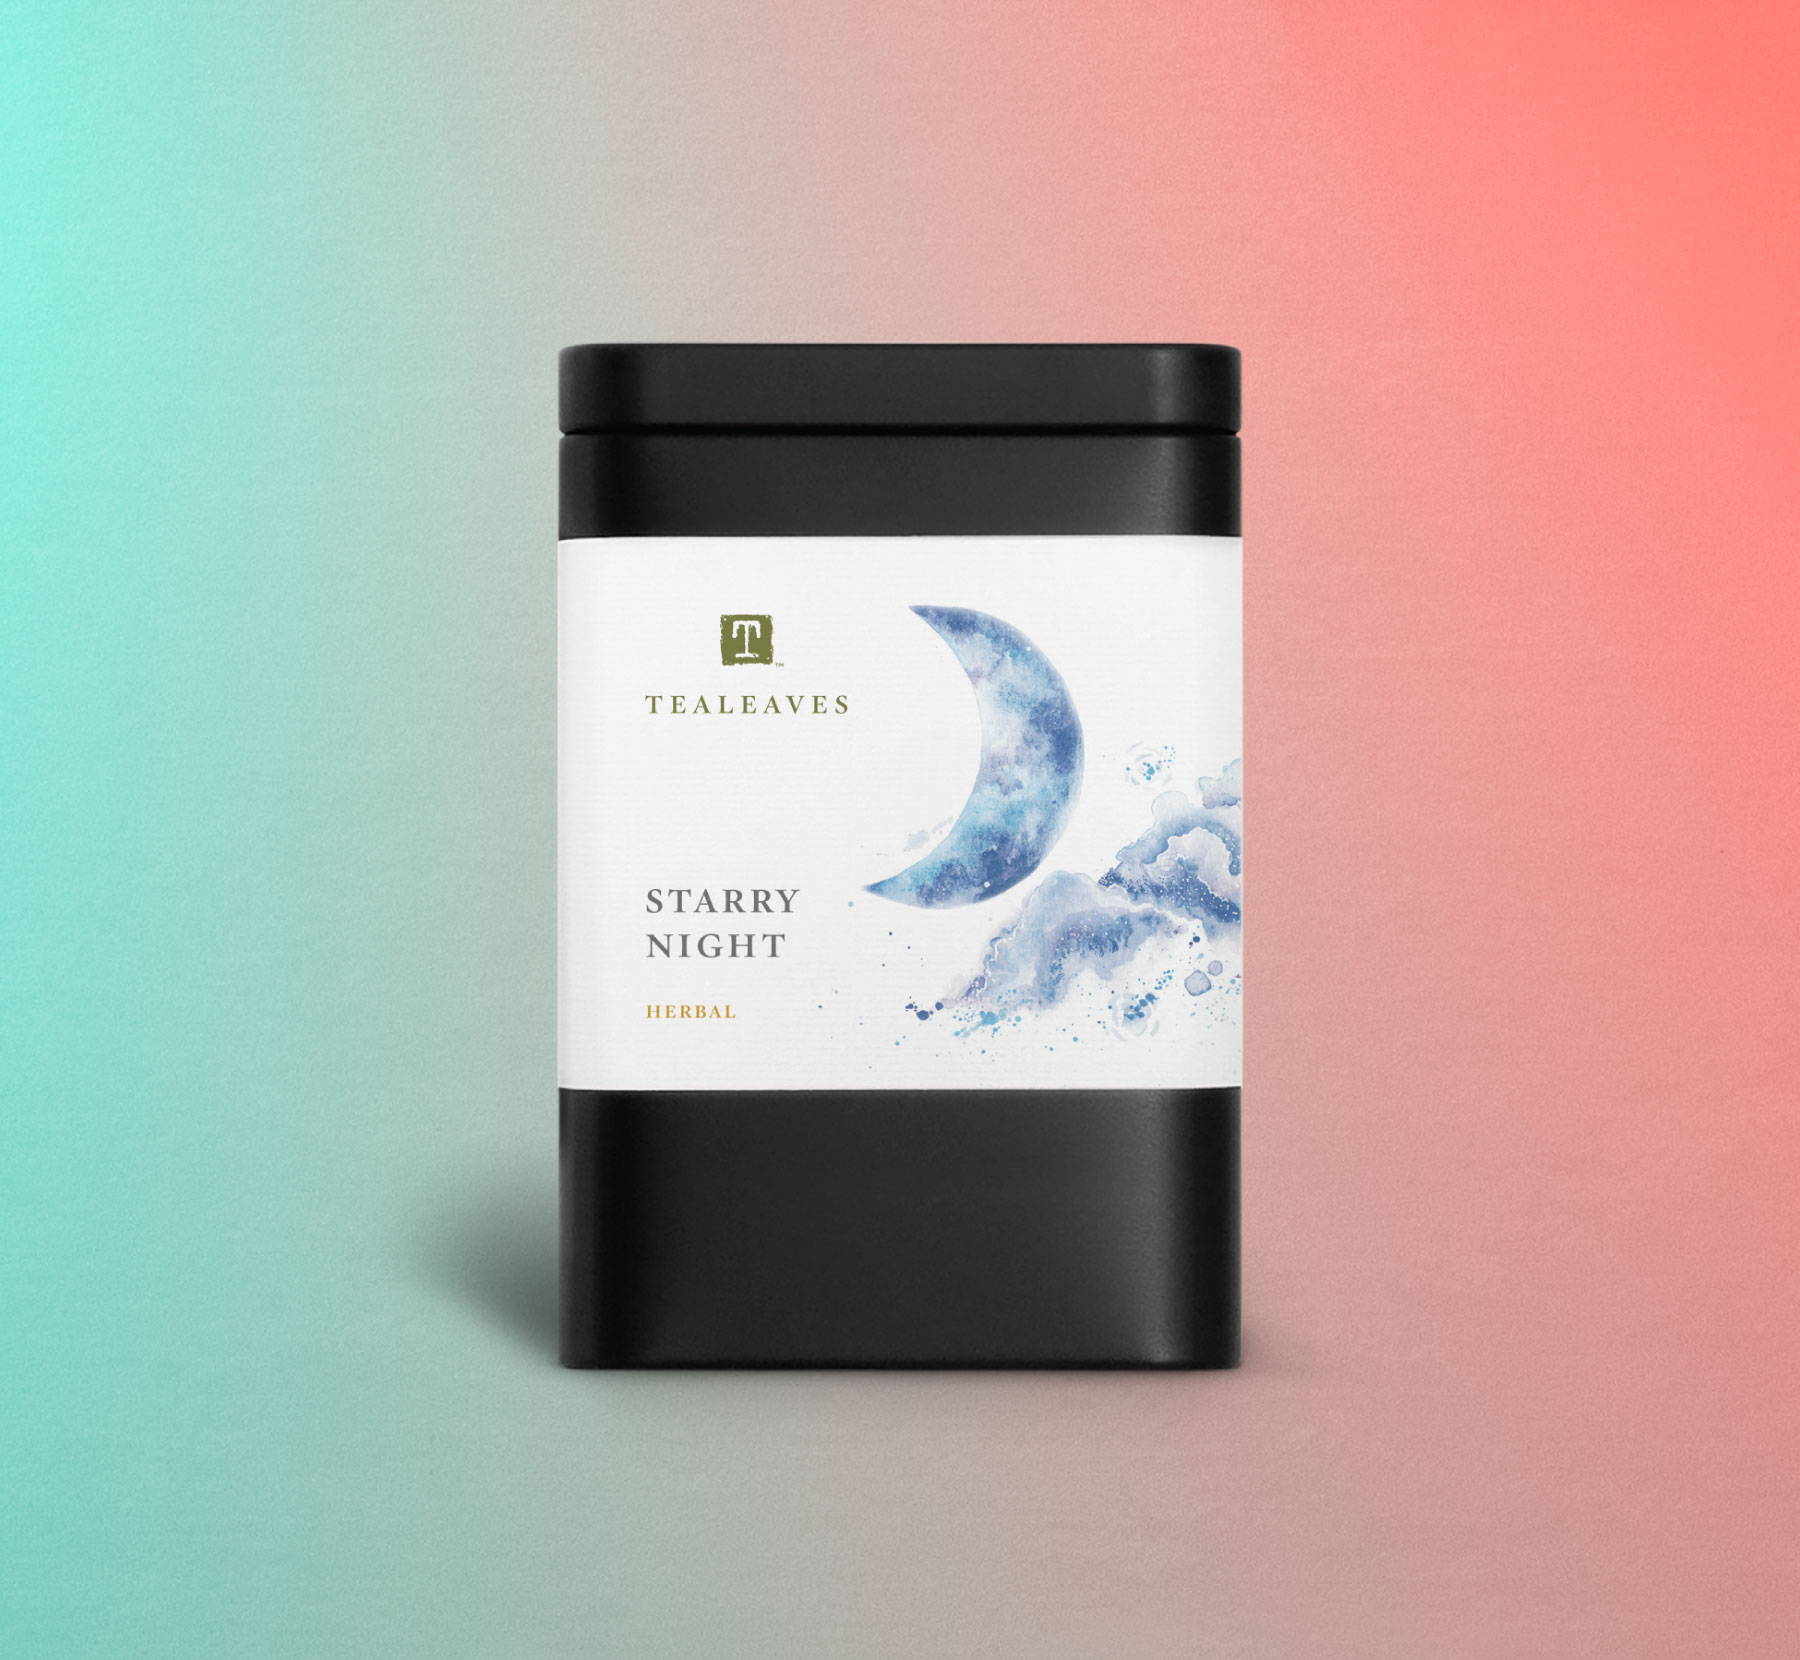 Starry Night herbal blend